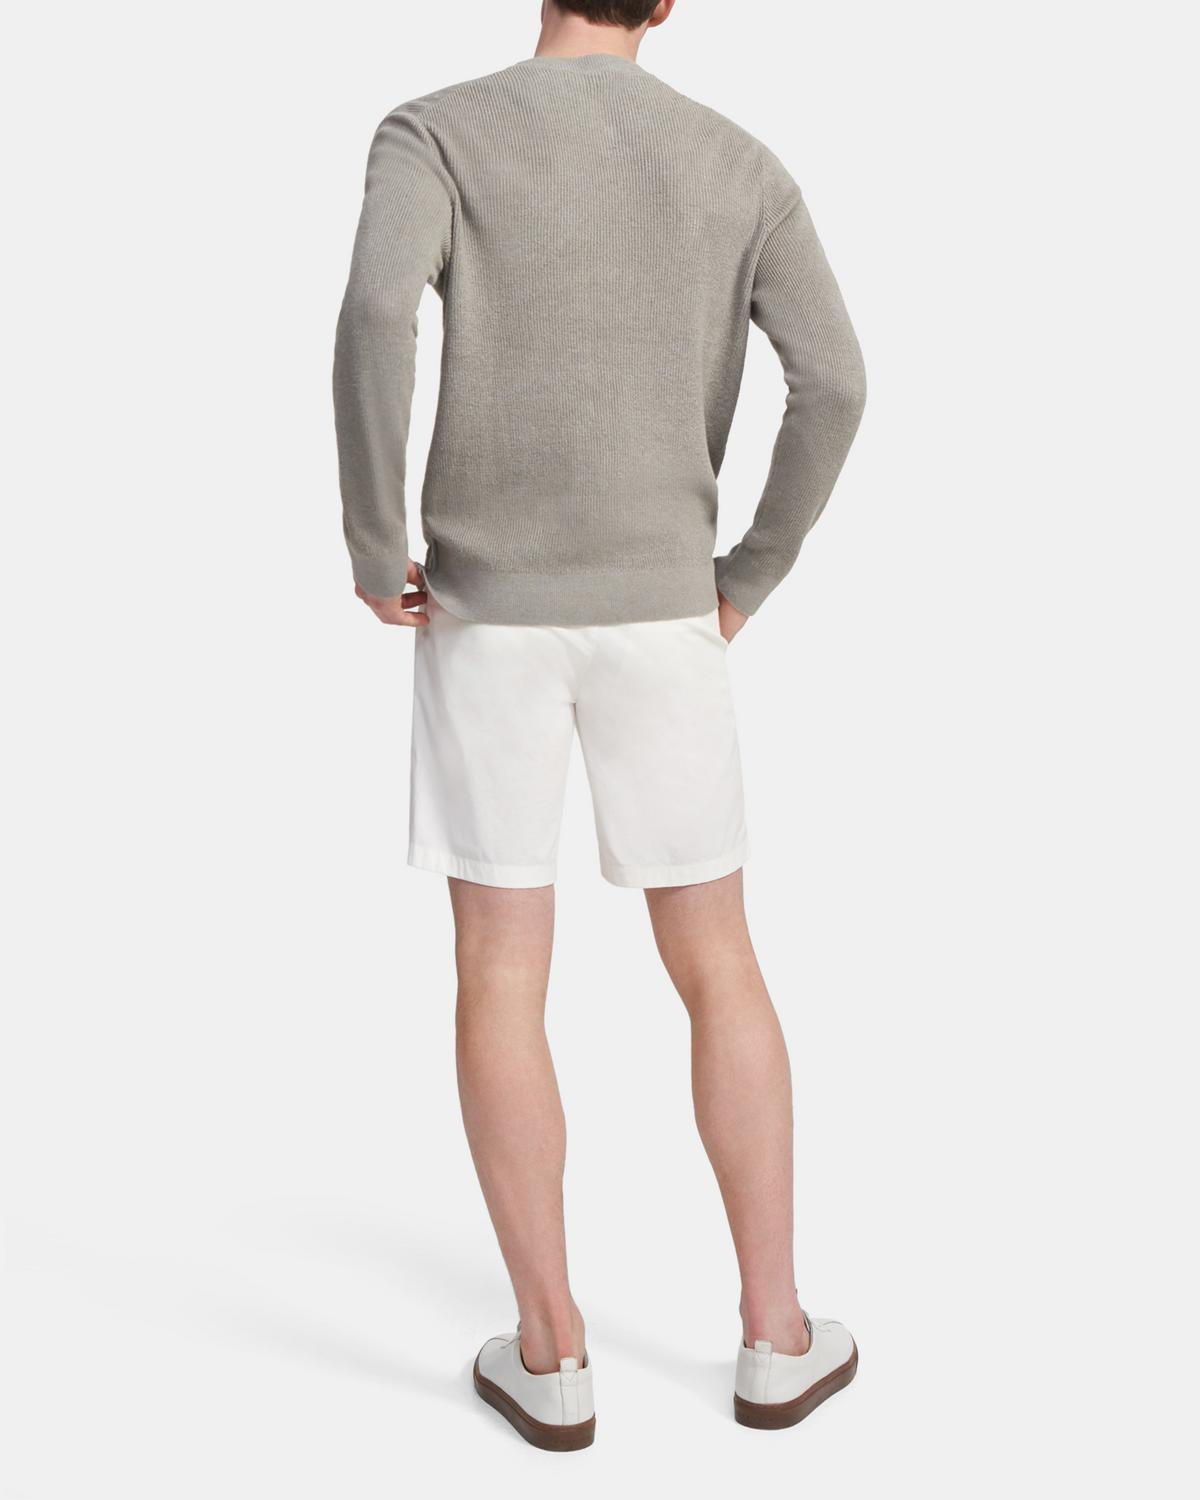 Crewneck Sweater in Linen Blend